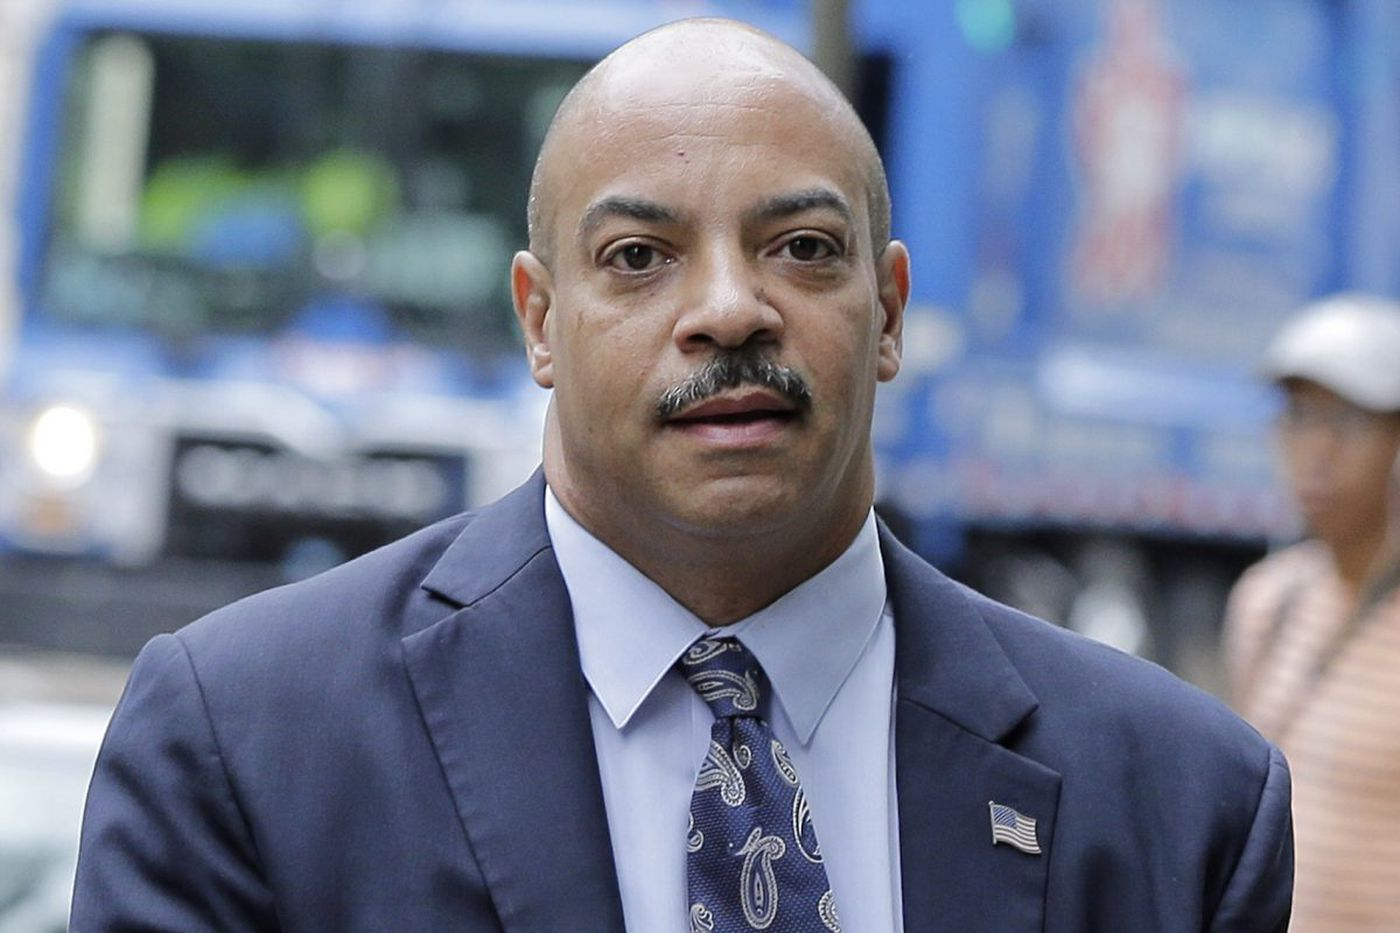 Williams' guilty plea changes little in Philly's corruption climate